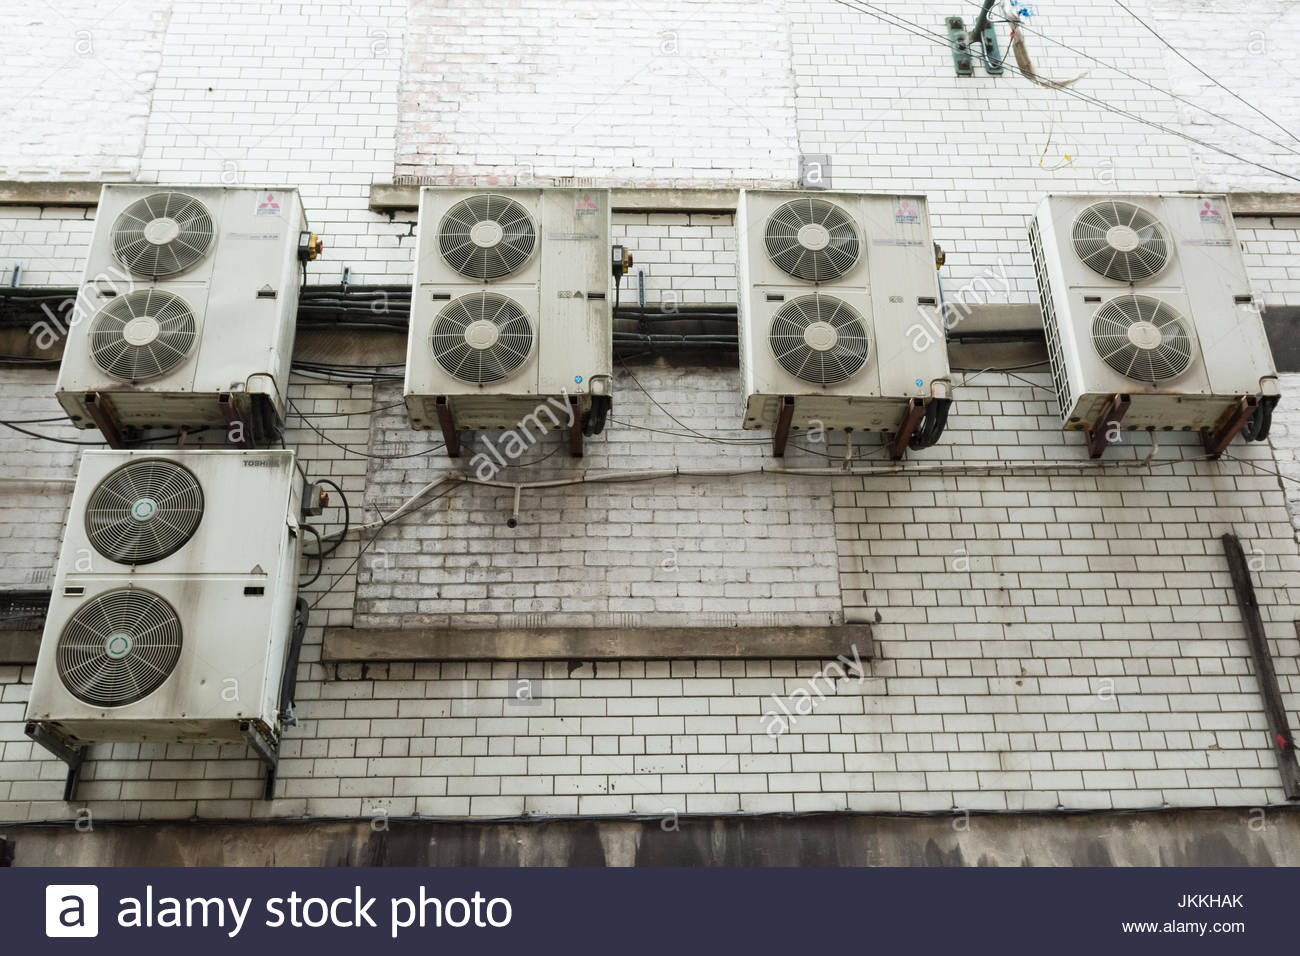 air conditioning units on external wall - Stock Image